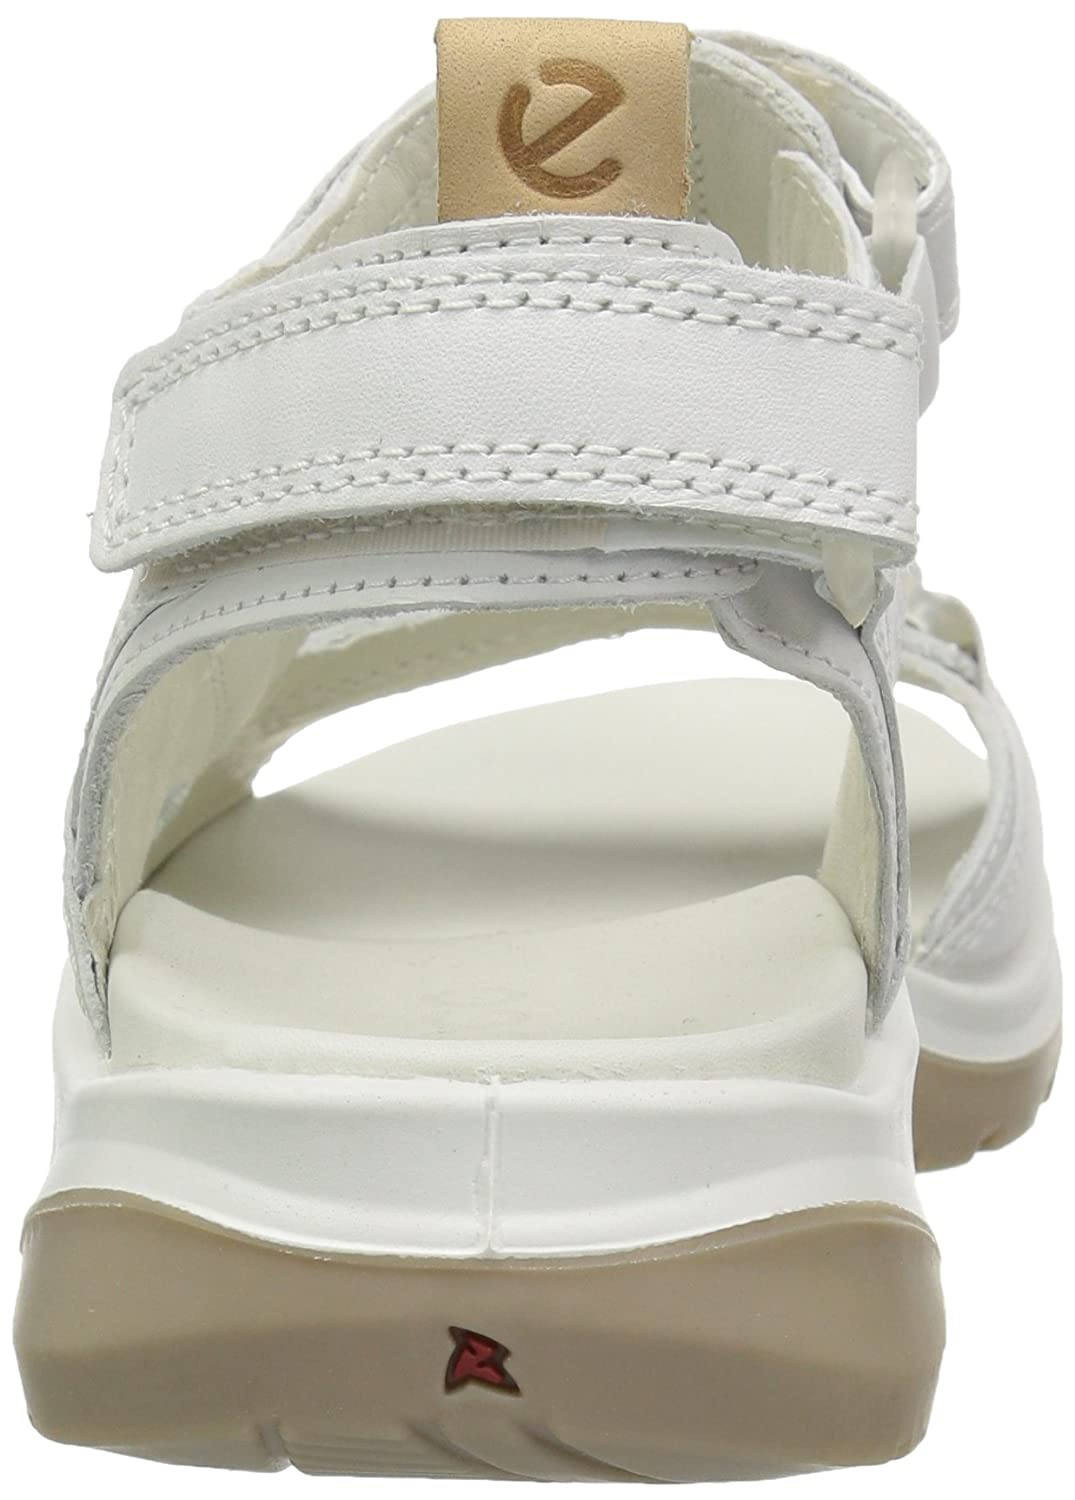 ECCO Women's Yucatan Sandal B076ZTS8HD 43 EU/12-12.5 M US|White/Powder